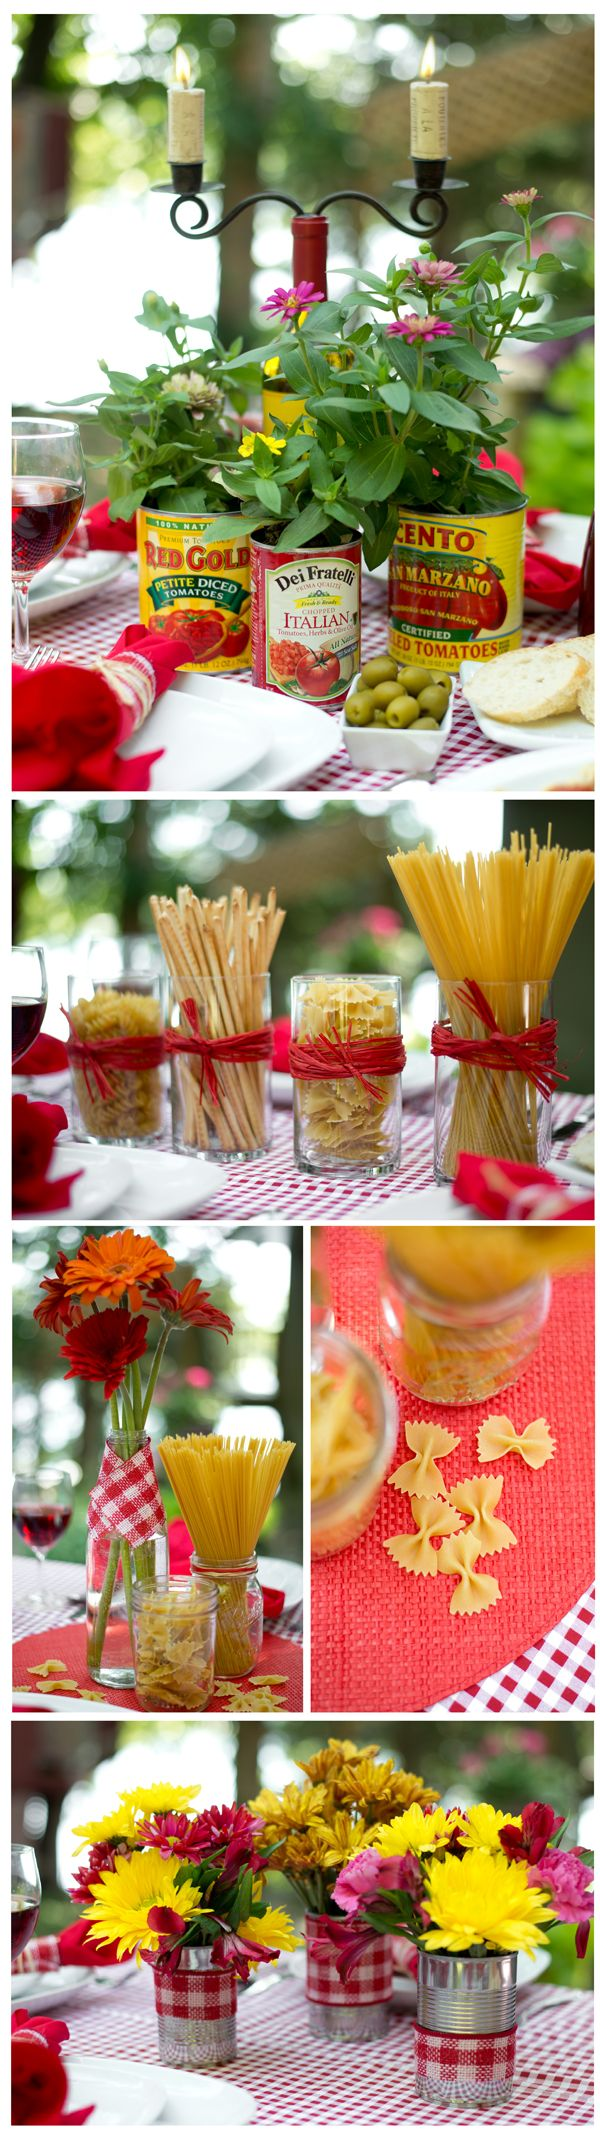 Great, simple & fun Italian theme table or buffet centerpieces, but going to add some fresh basil for a delicious scent. Doing this for my next large gang meal. P.S. At a local Italian restaurant they used very large cans to serve as pizza holders. They'd be fun to elevate platters too, like cake plates. Easy storage, just nest varied can sizes inside each other. Heading out to HG, TJs & Marshalls for colored, interesting pasta. Wonder if I can find those drippy candles to stick in empty…